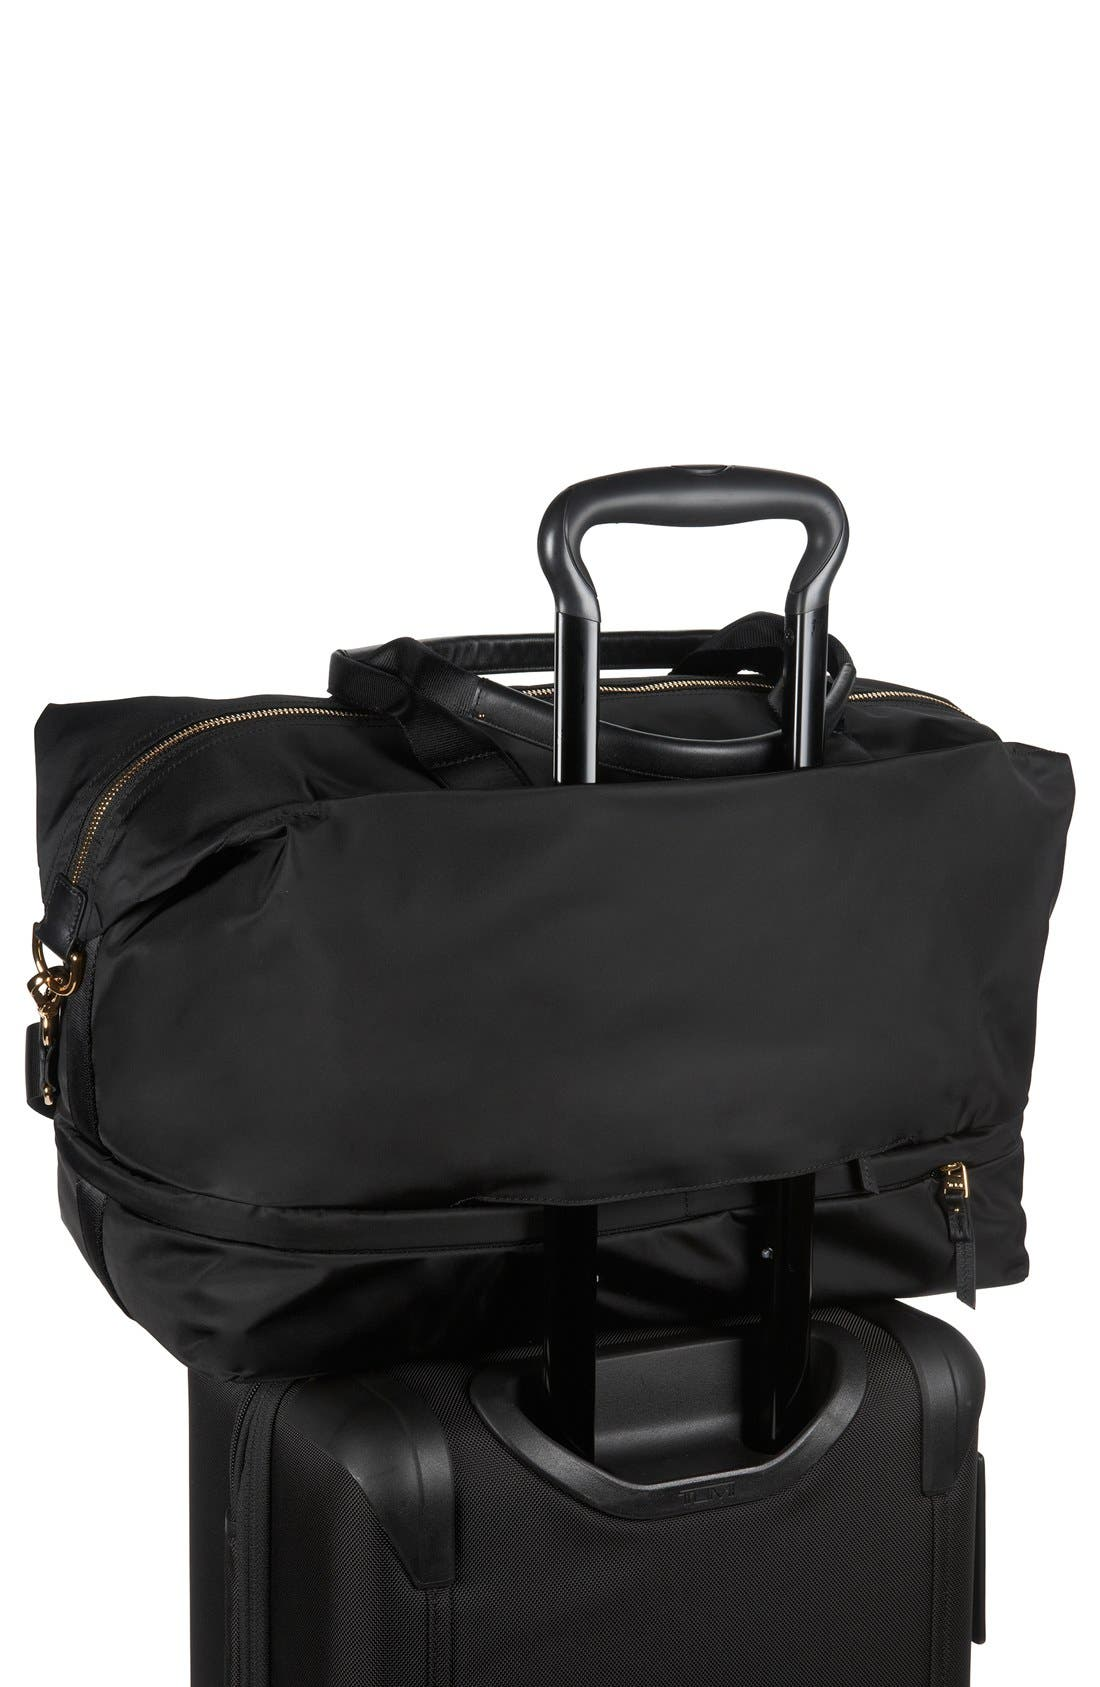 Durban Expandable Duffel Bag,                             Alternate thumbnail 4, color,                             Black